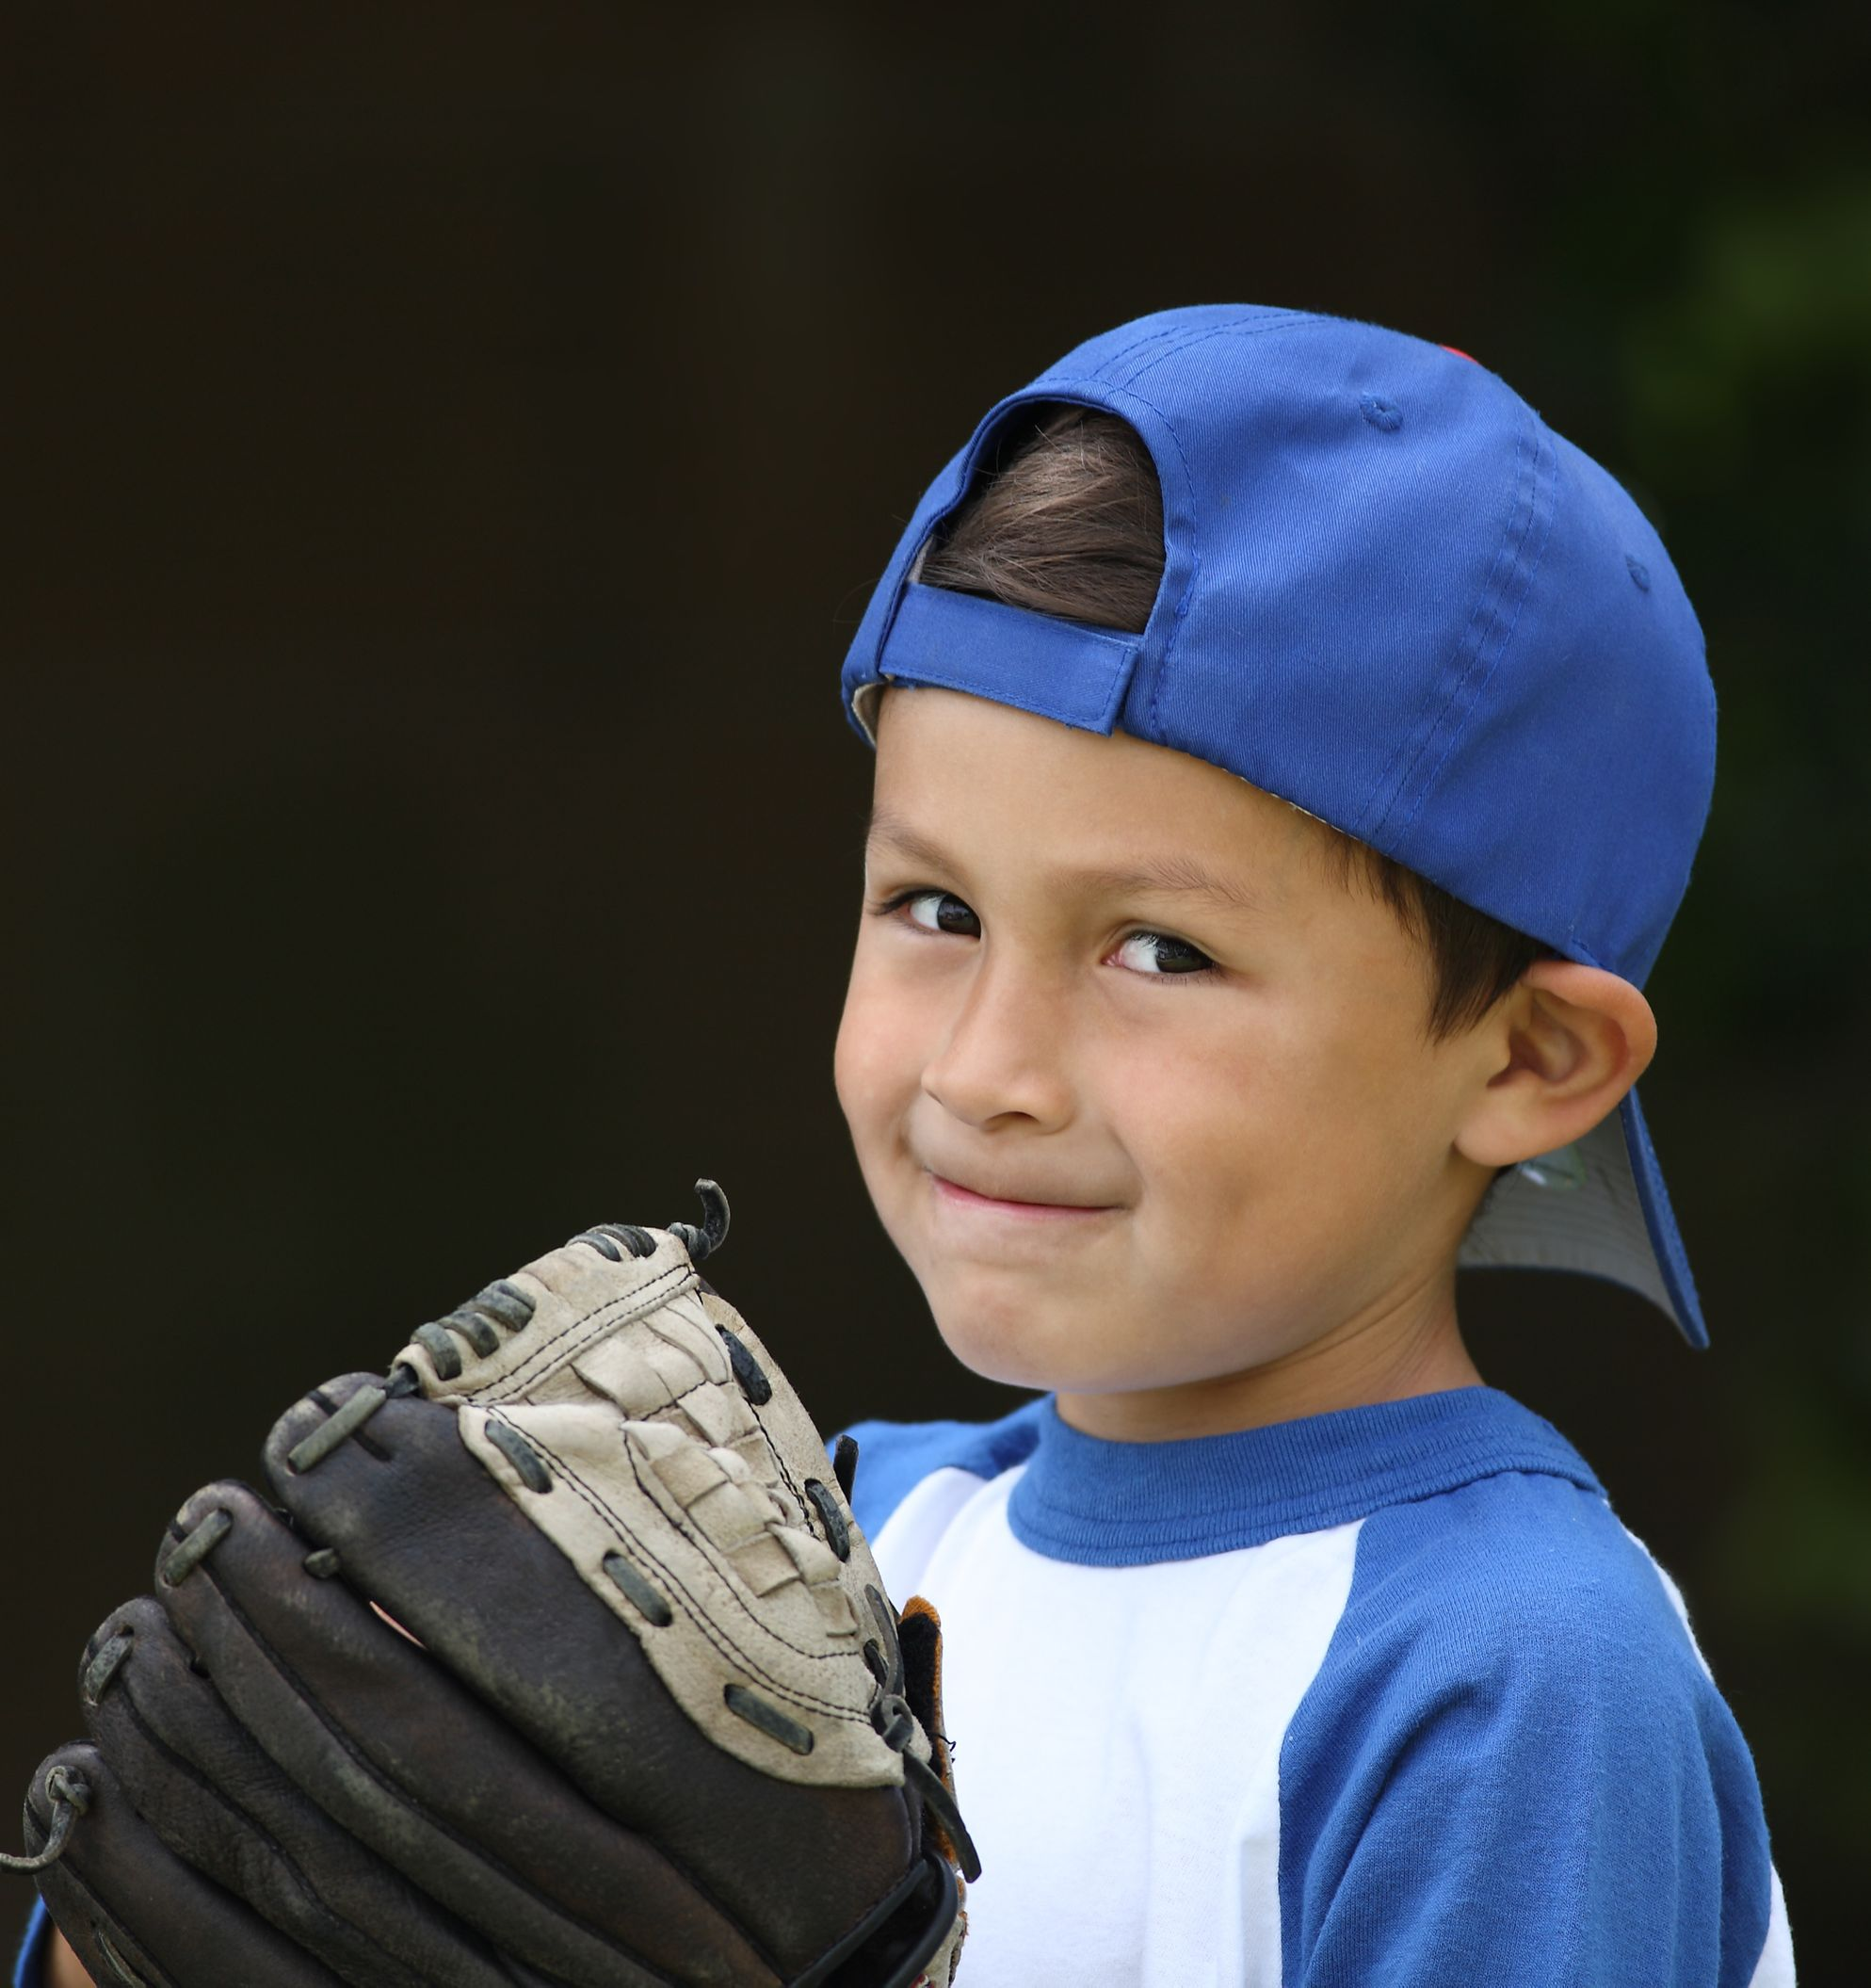 Boy with baseball glove playing competitive or lower-pressure sports.